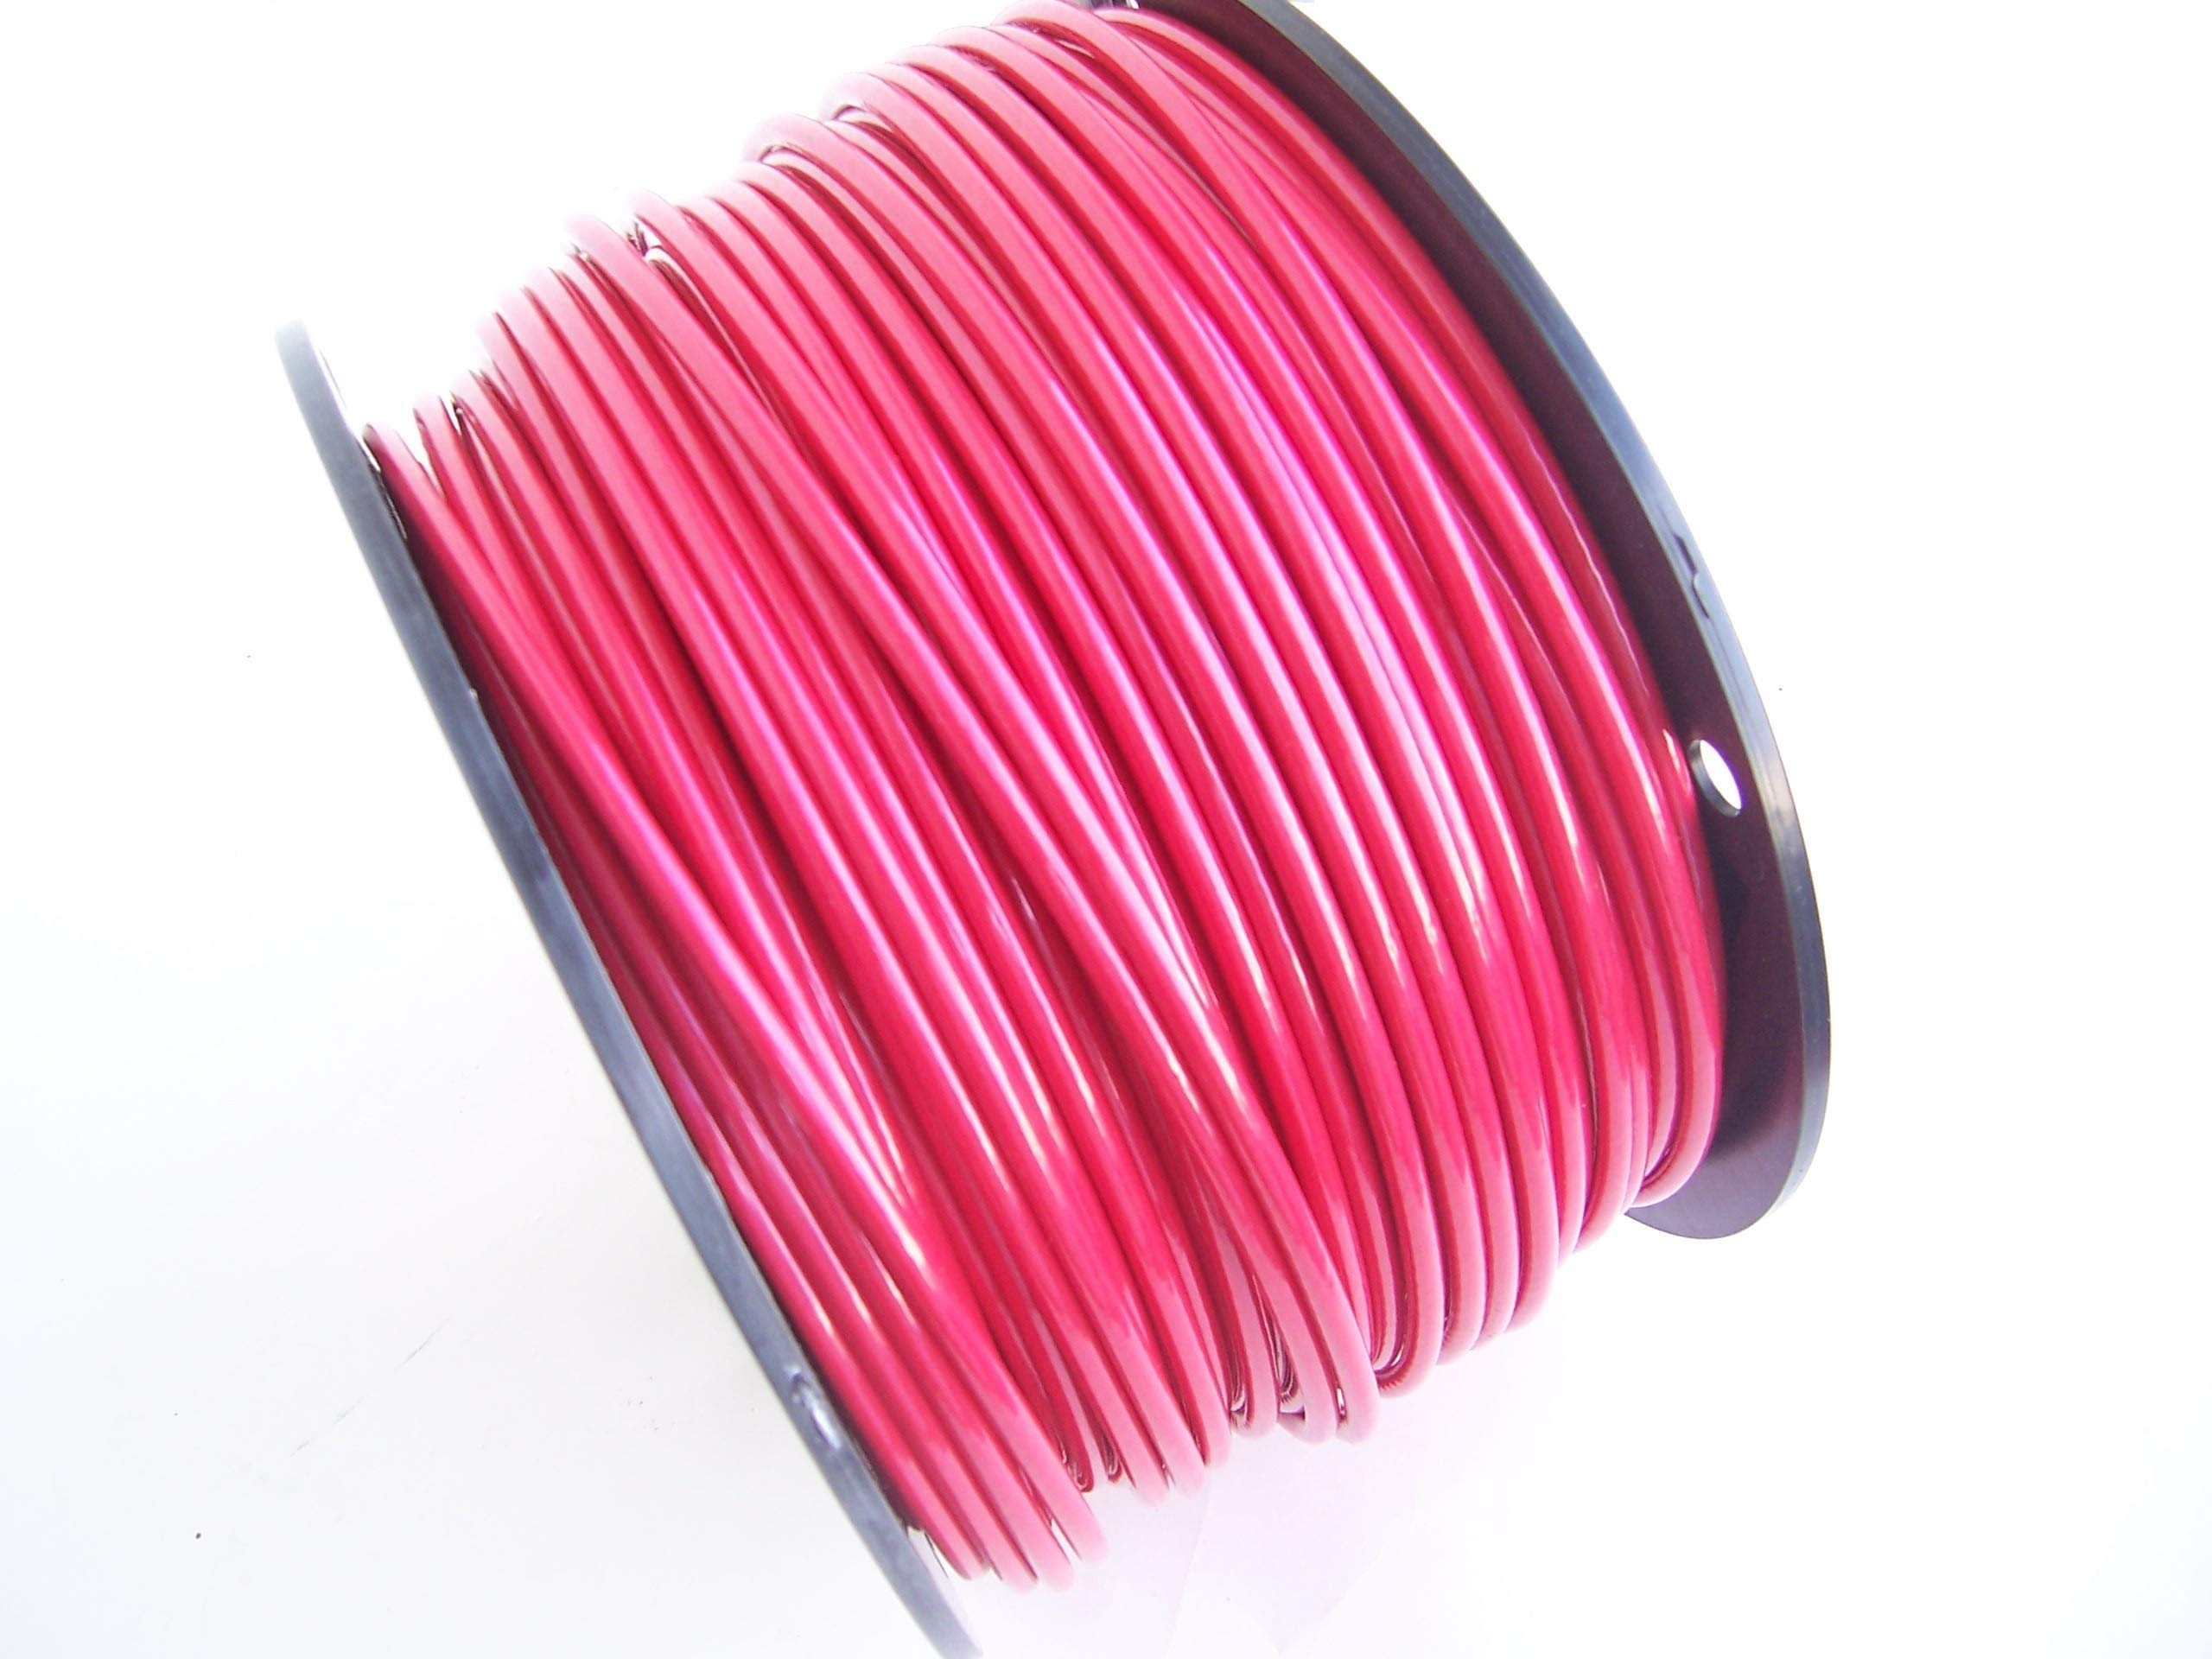 Red Vinyl Coated Wire Rope Cable, 3/16'' - 1/4'', 7x19, Coated in USA: 100 ft, 250 ft and 500 ft Reels (250 Ft Reel)